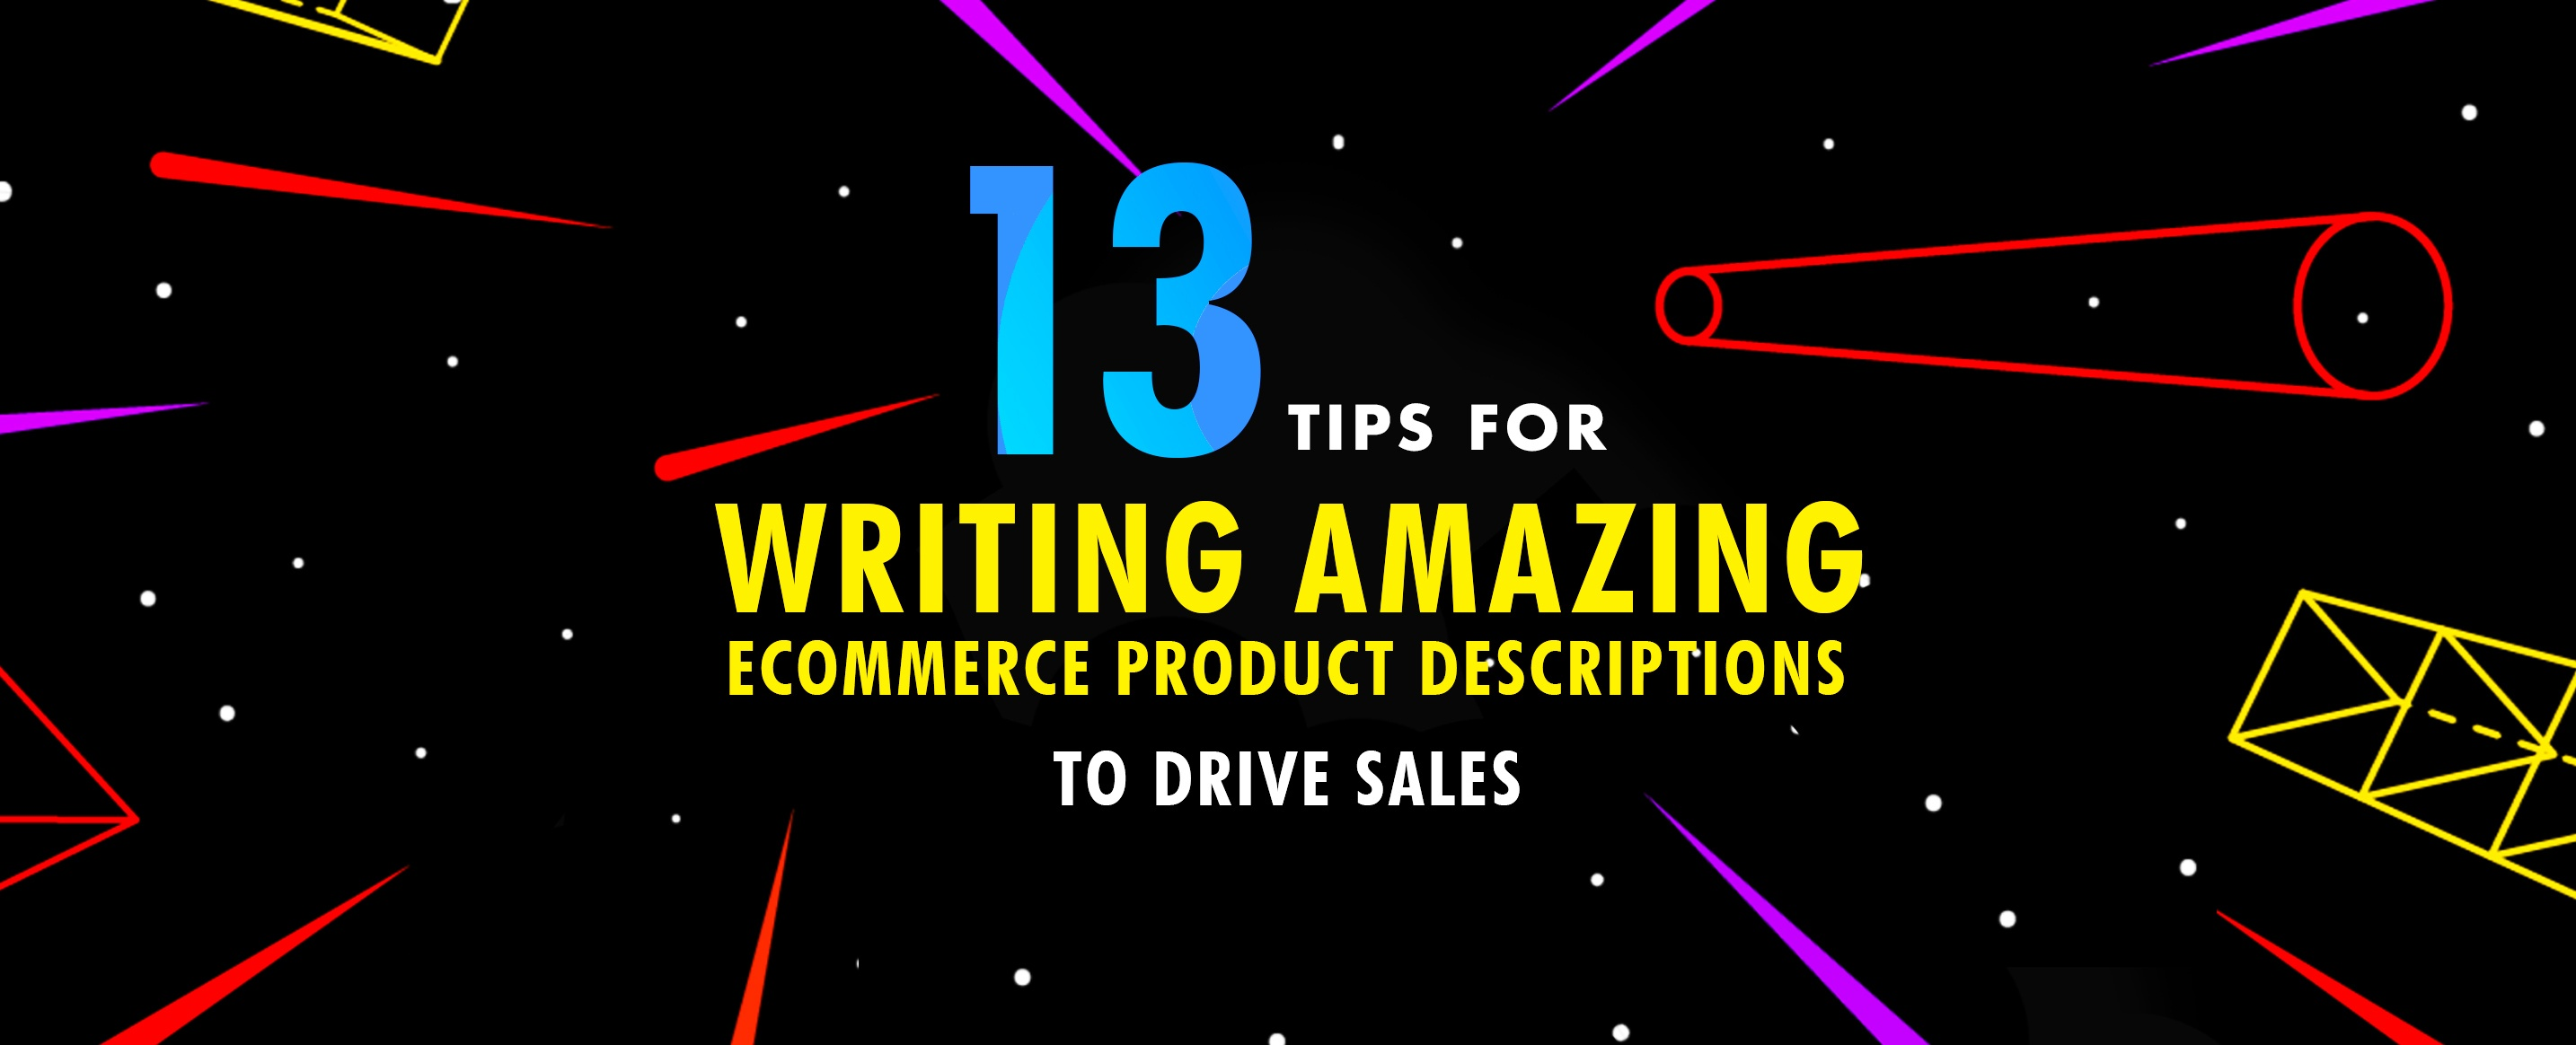 Tips-for-Writing-Amazing-Ecommerce-Product-Descriptions-To-Drive-Sales